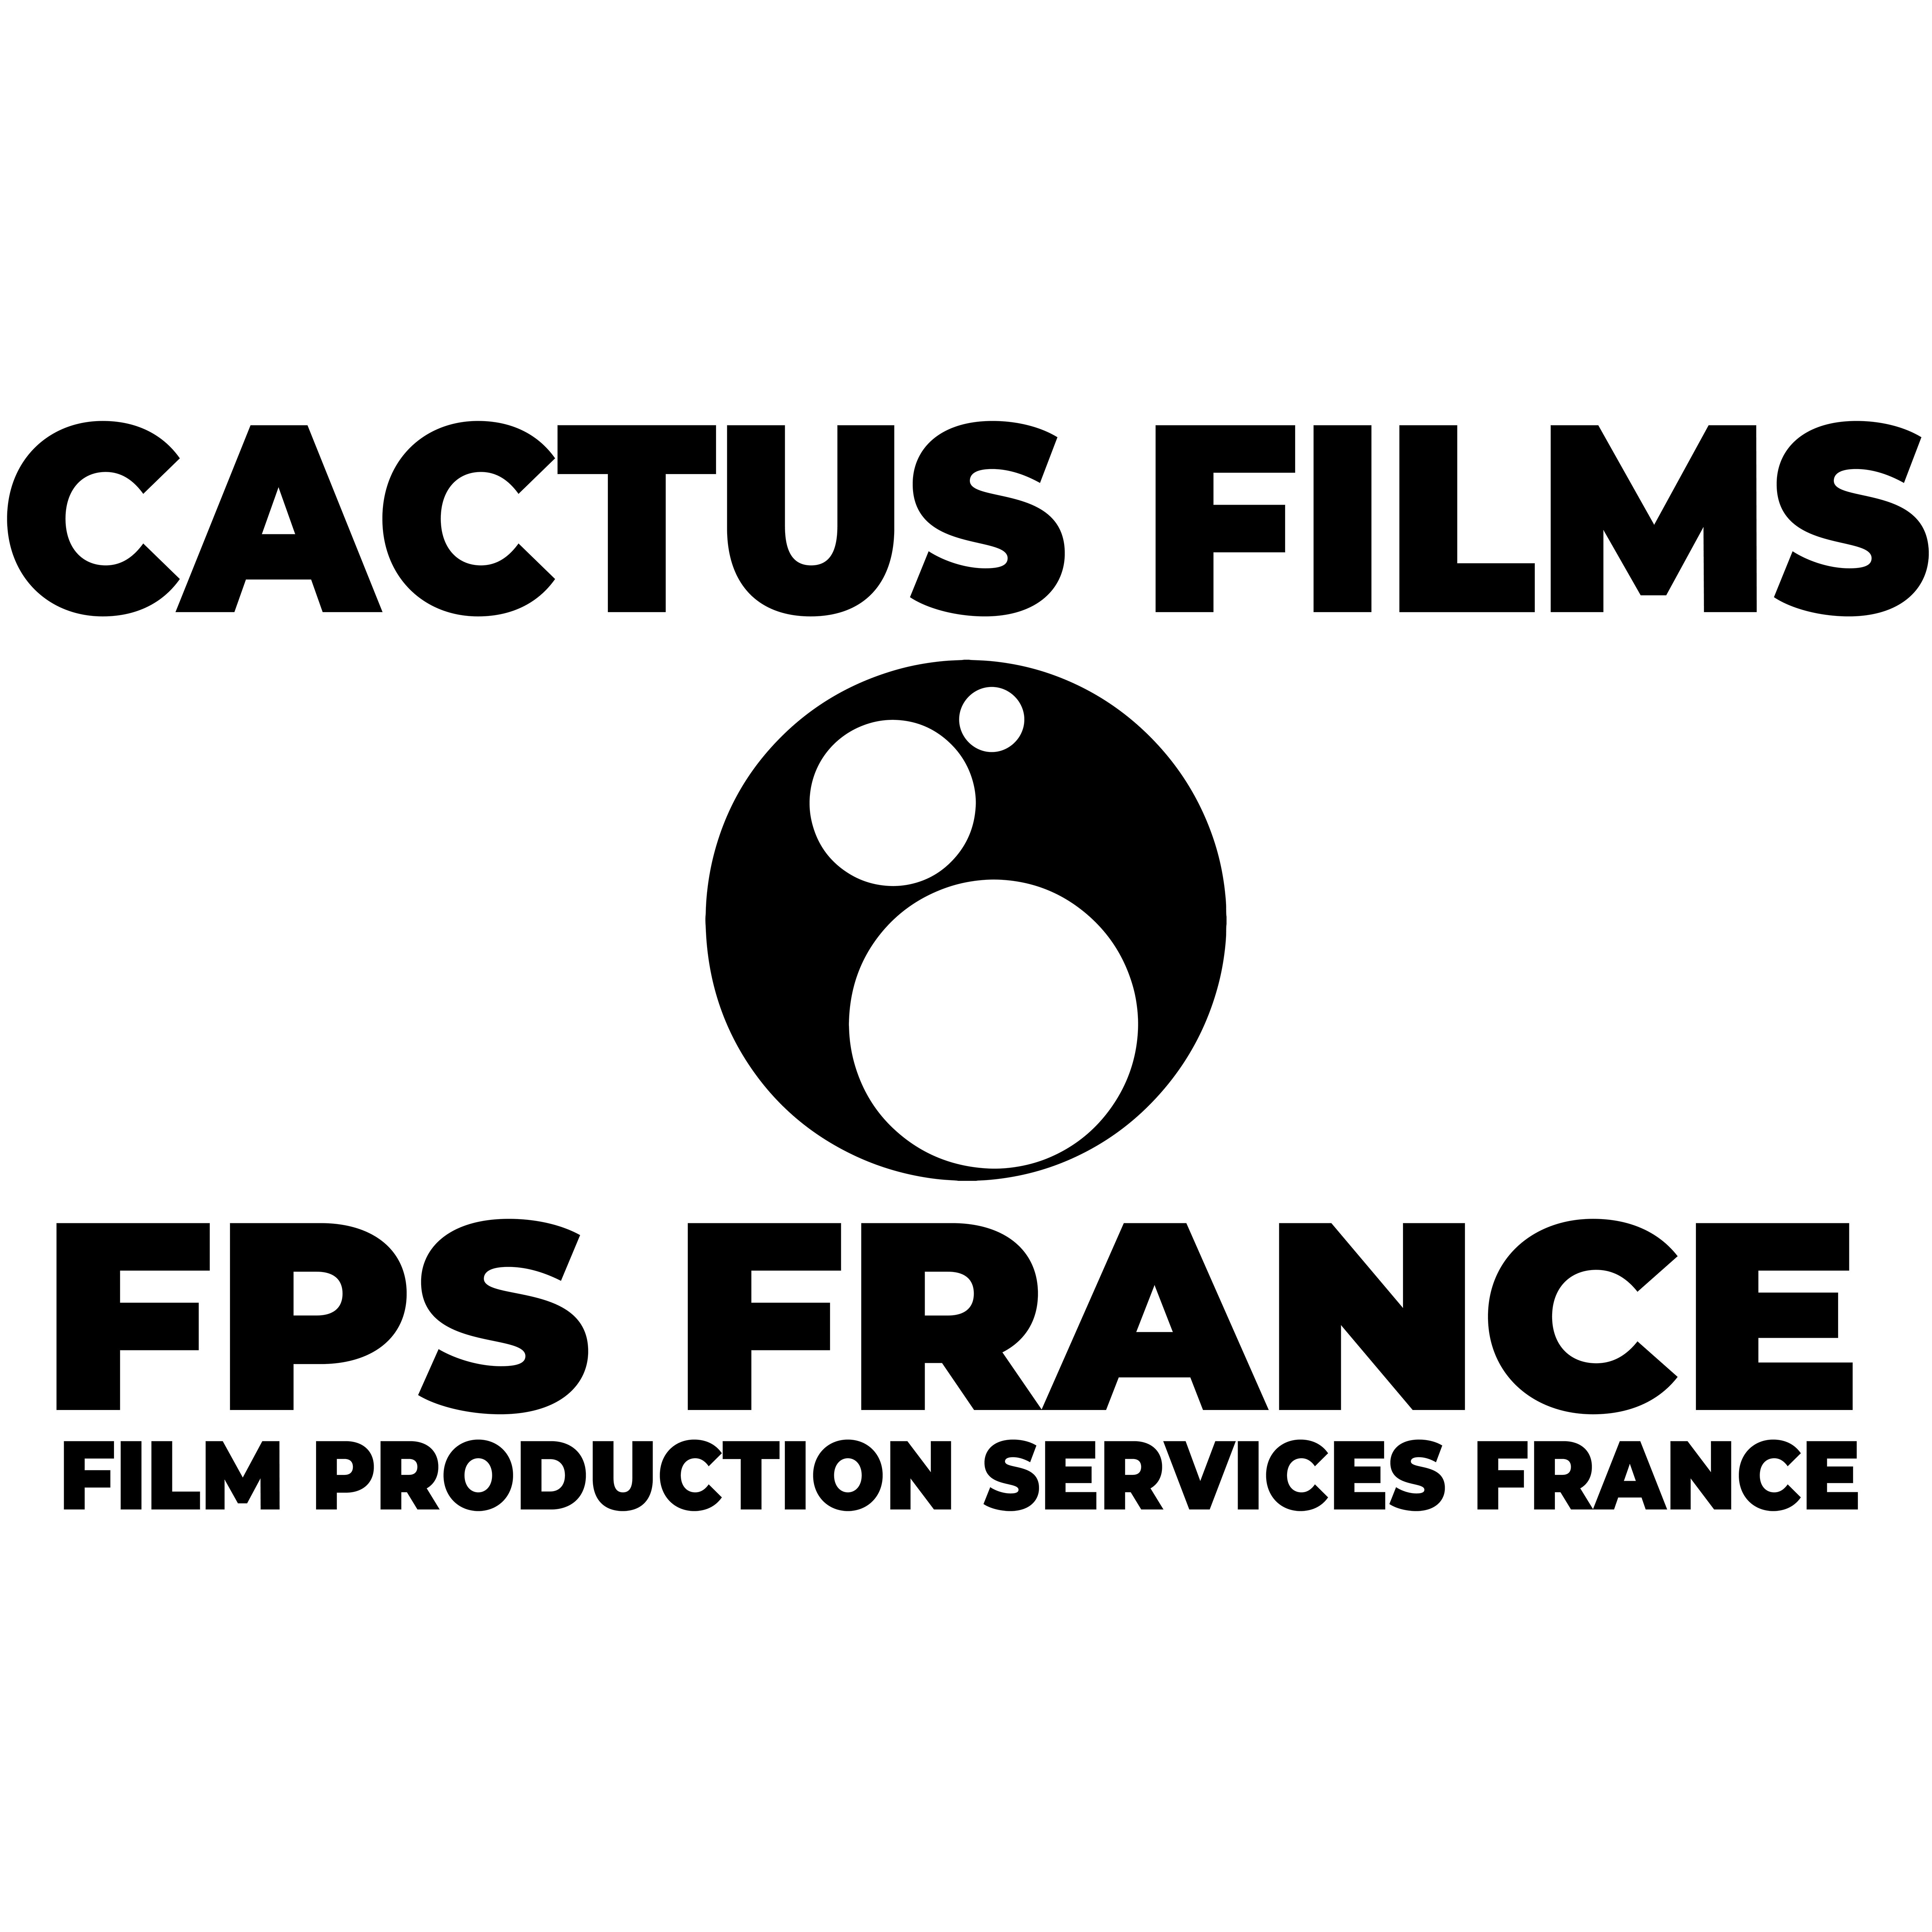 Cactus Films TV and Film Production Services